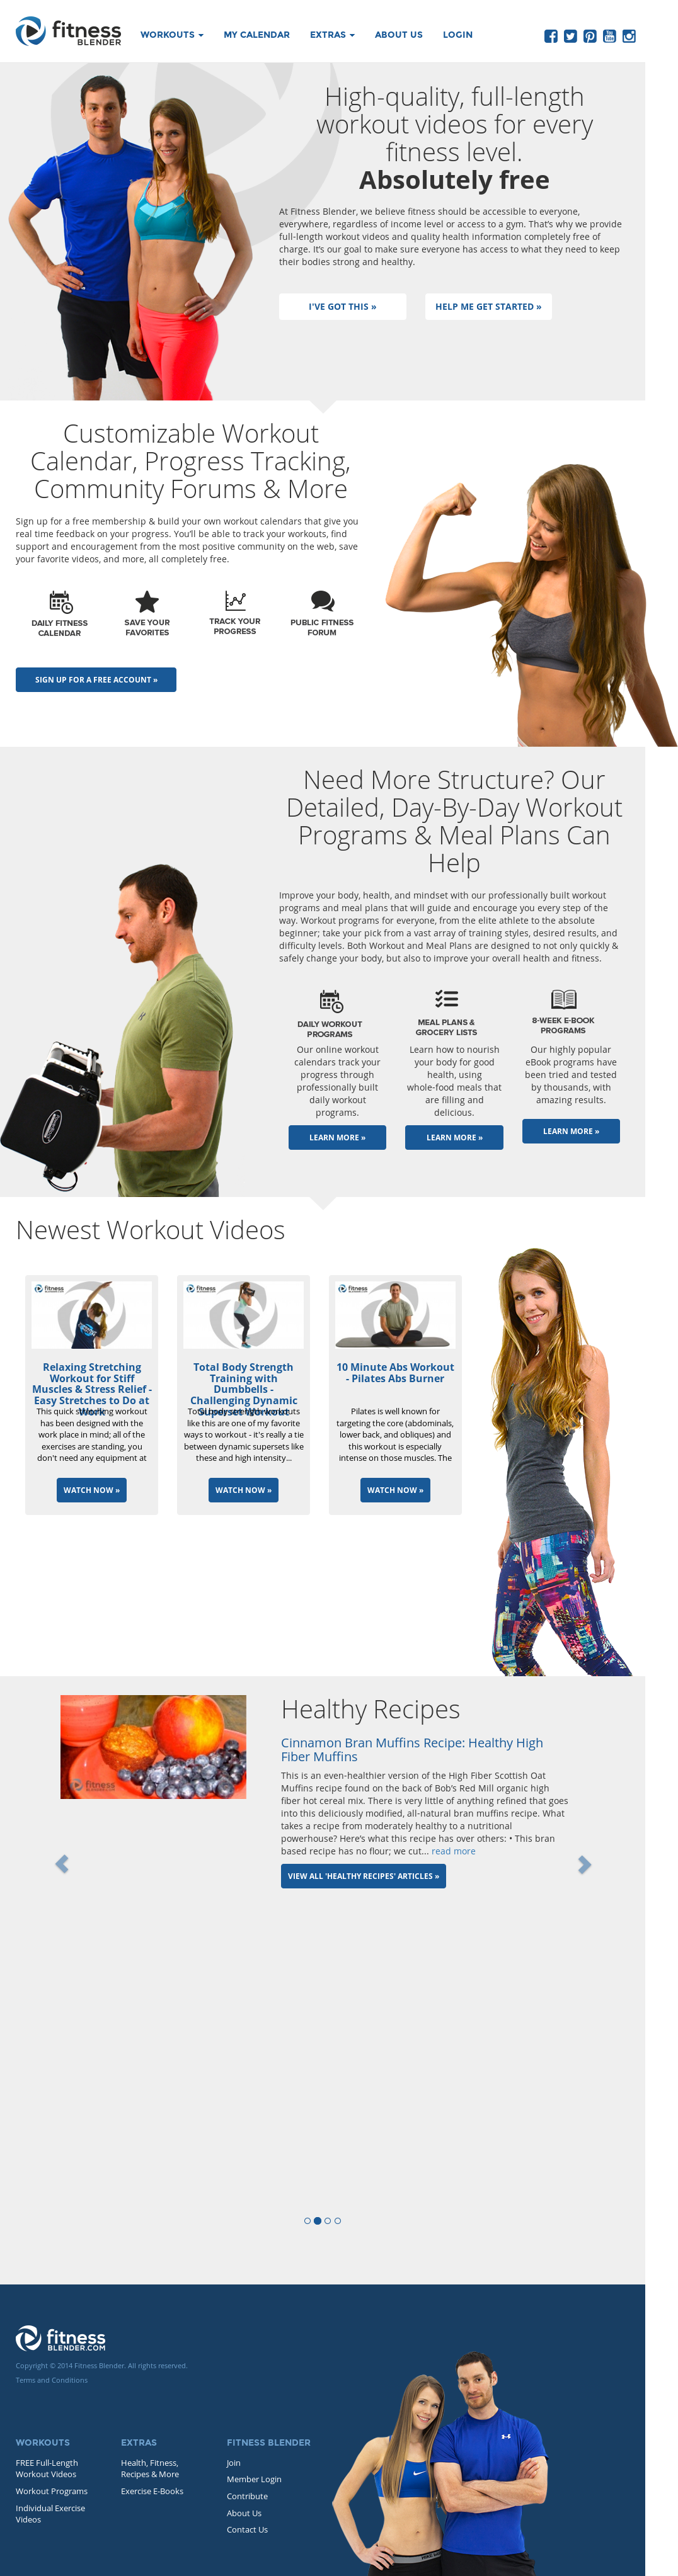 Fitnessblender Competitors, Revenue and Employees - Owler Company